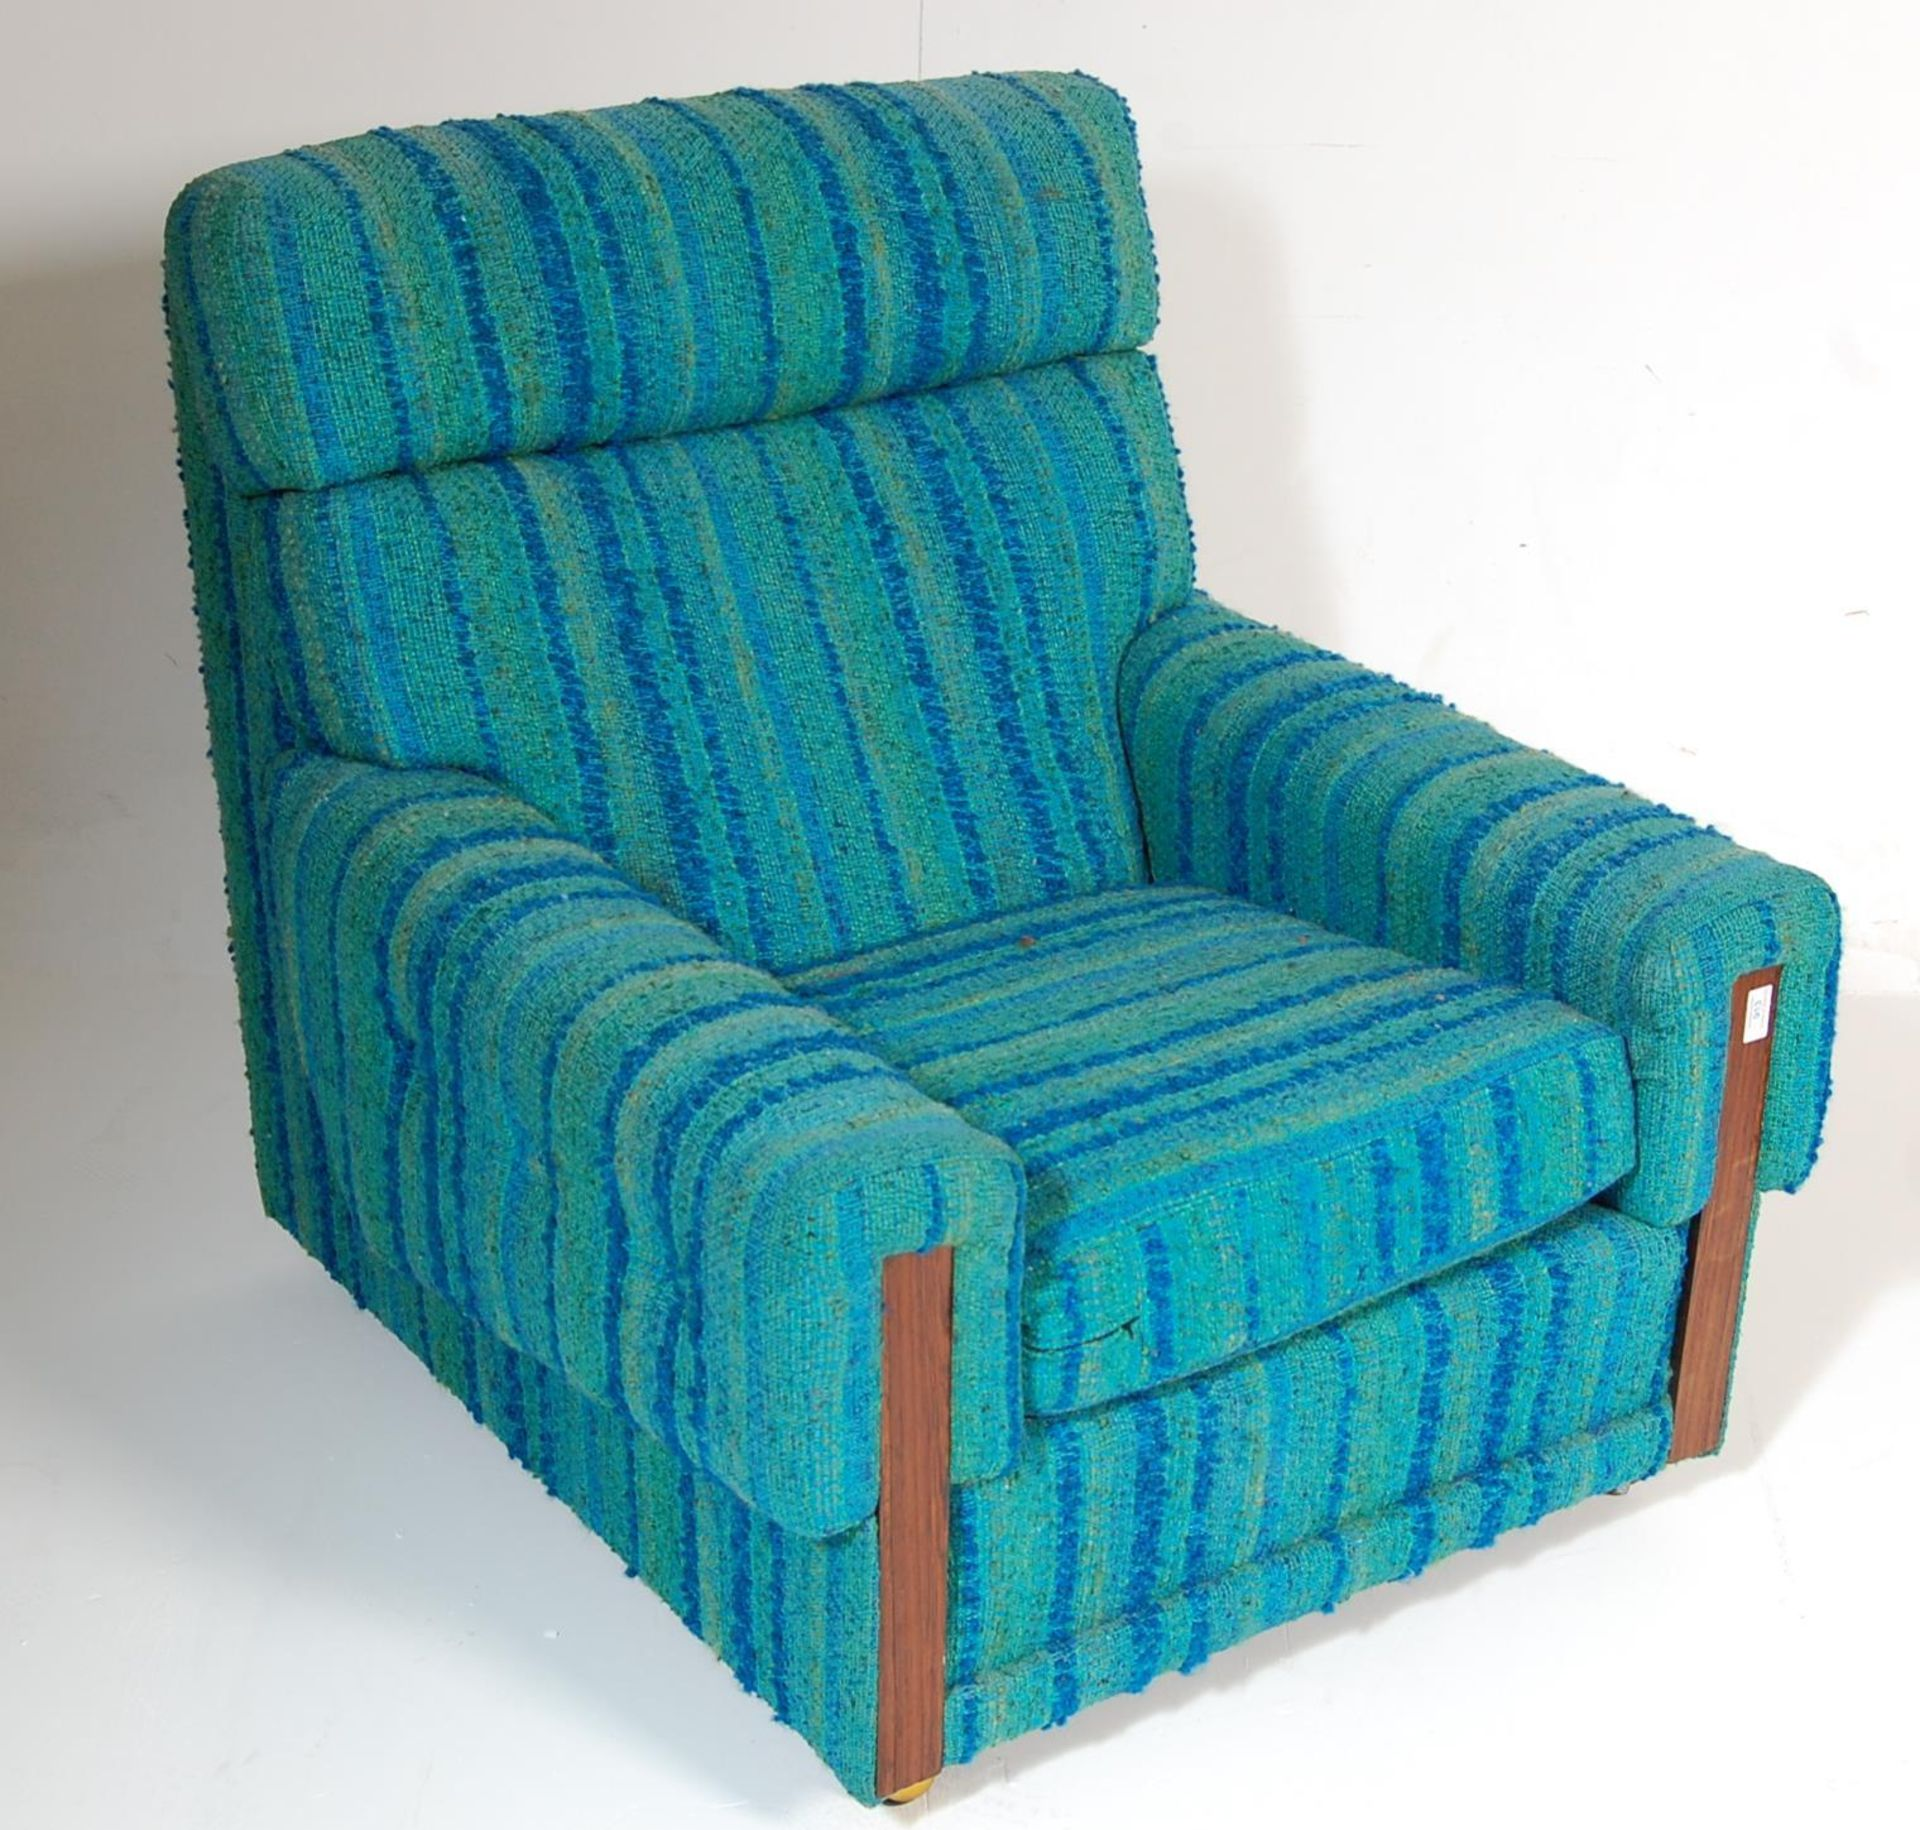 A retro mid century teak wood and upholstered easy chair / armchair - Image 2 of 5